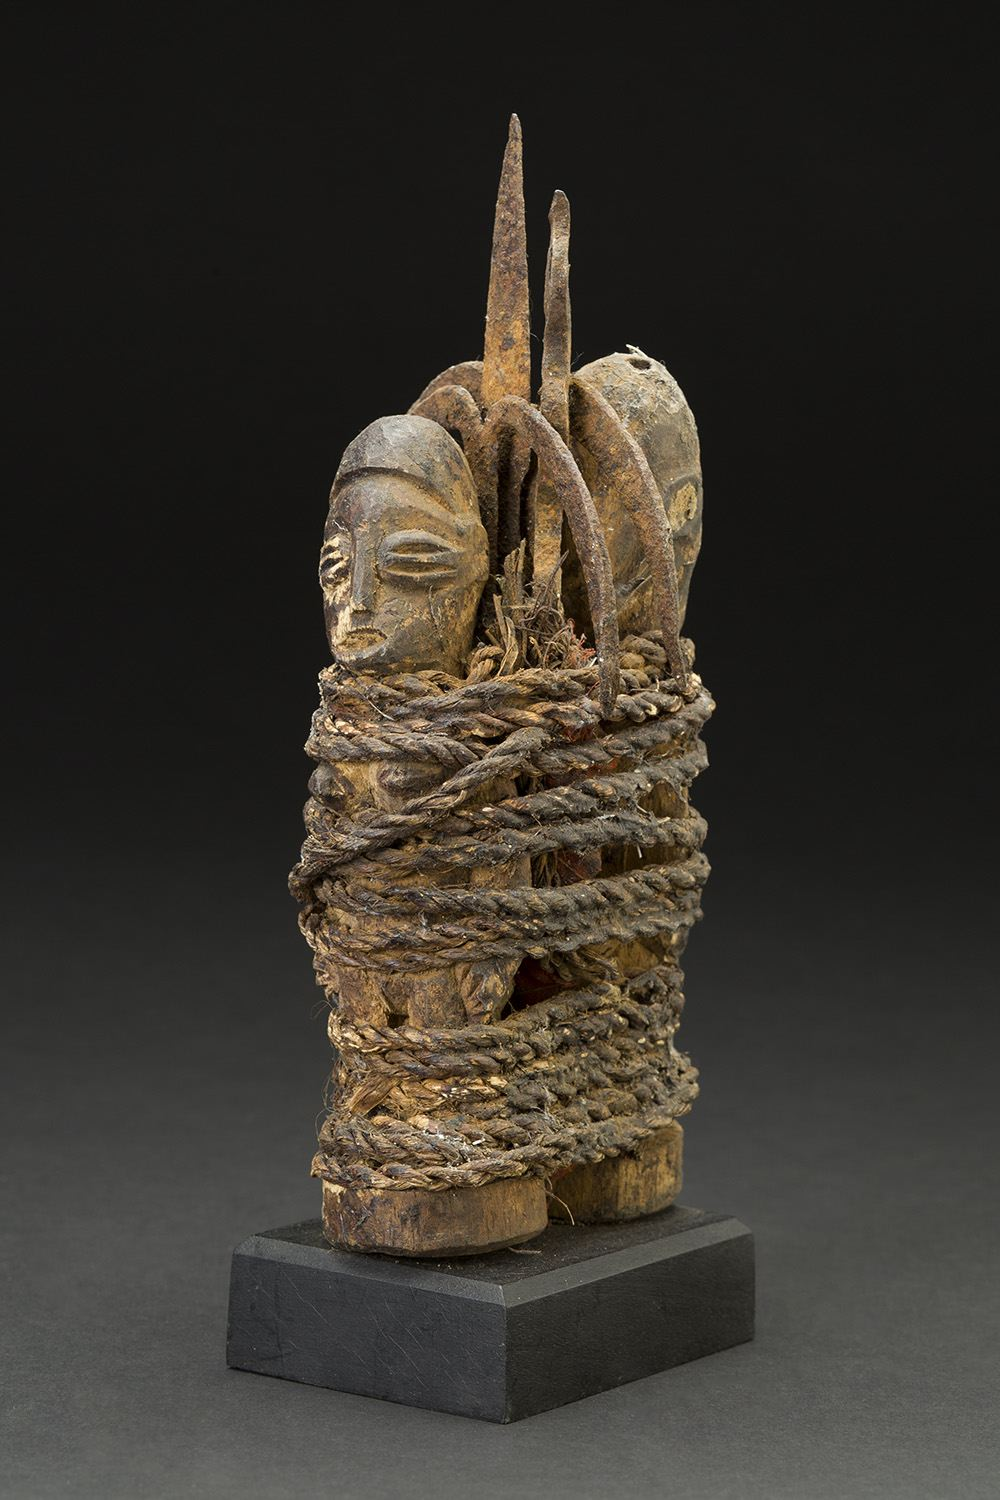 Africa    Vodun Sculpture - Adja People - Benin  , Mid. 20th C. Wood, metal, natural fibers 9 x 3.5 x 3.5 inches 22.9 x 8.9 x 8.9 cm Af 308